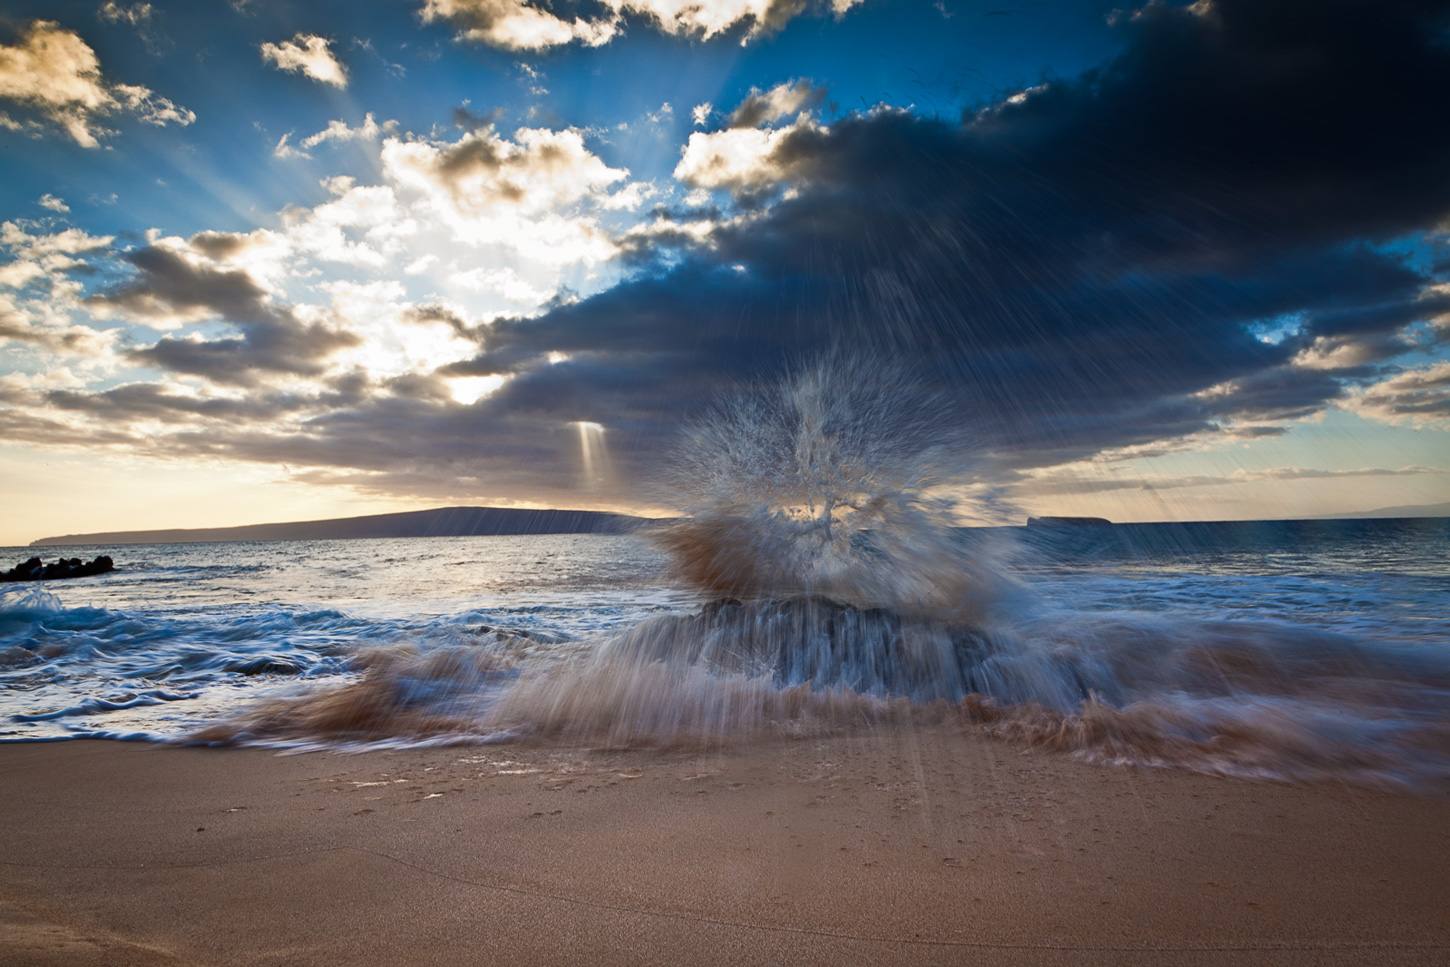 Dramatic waves in Maui at Makena Beach